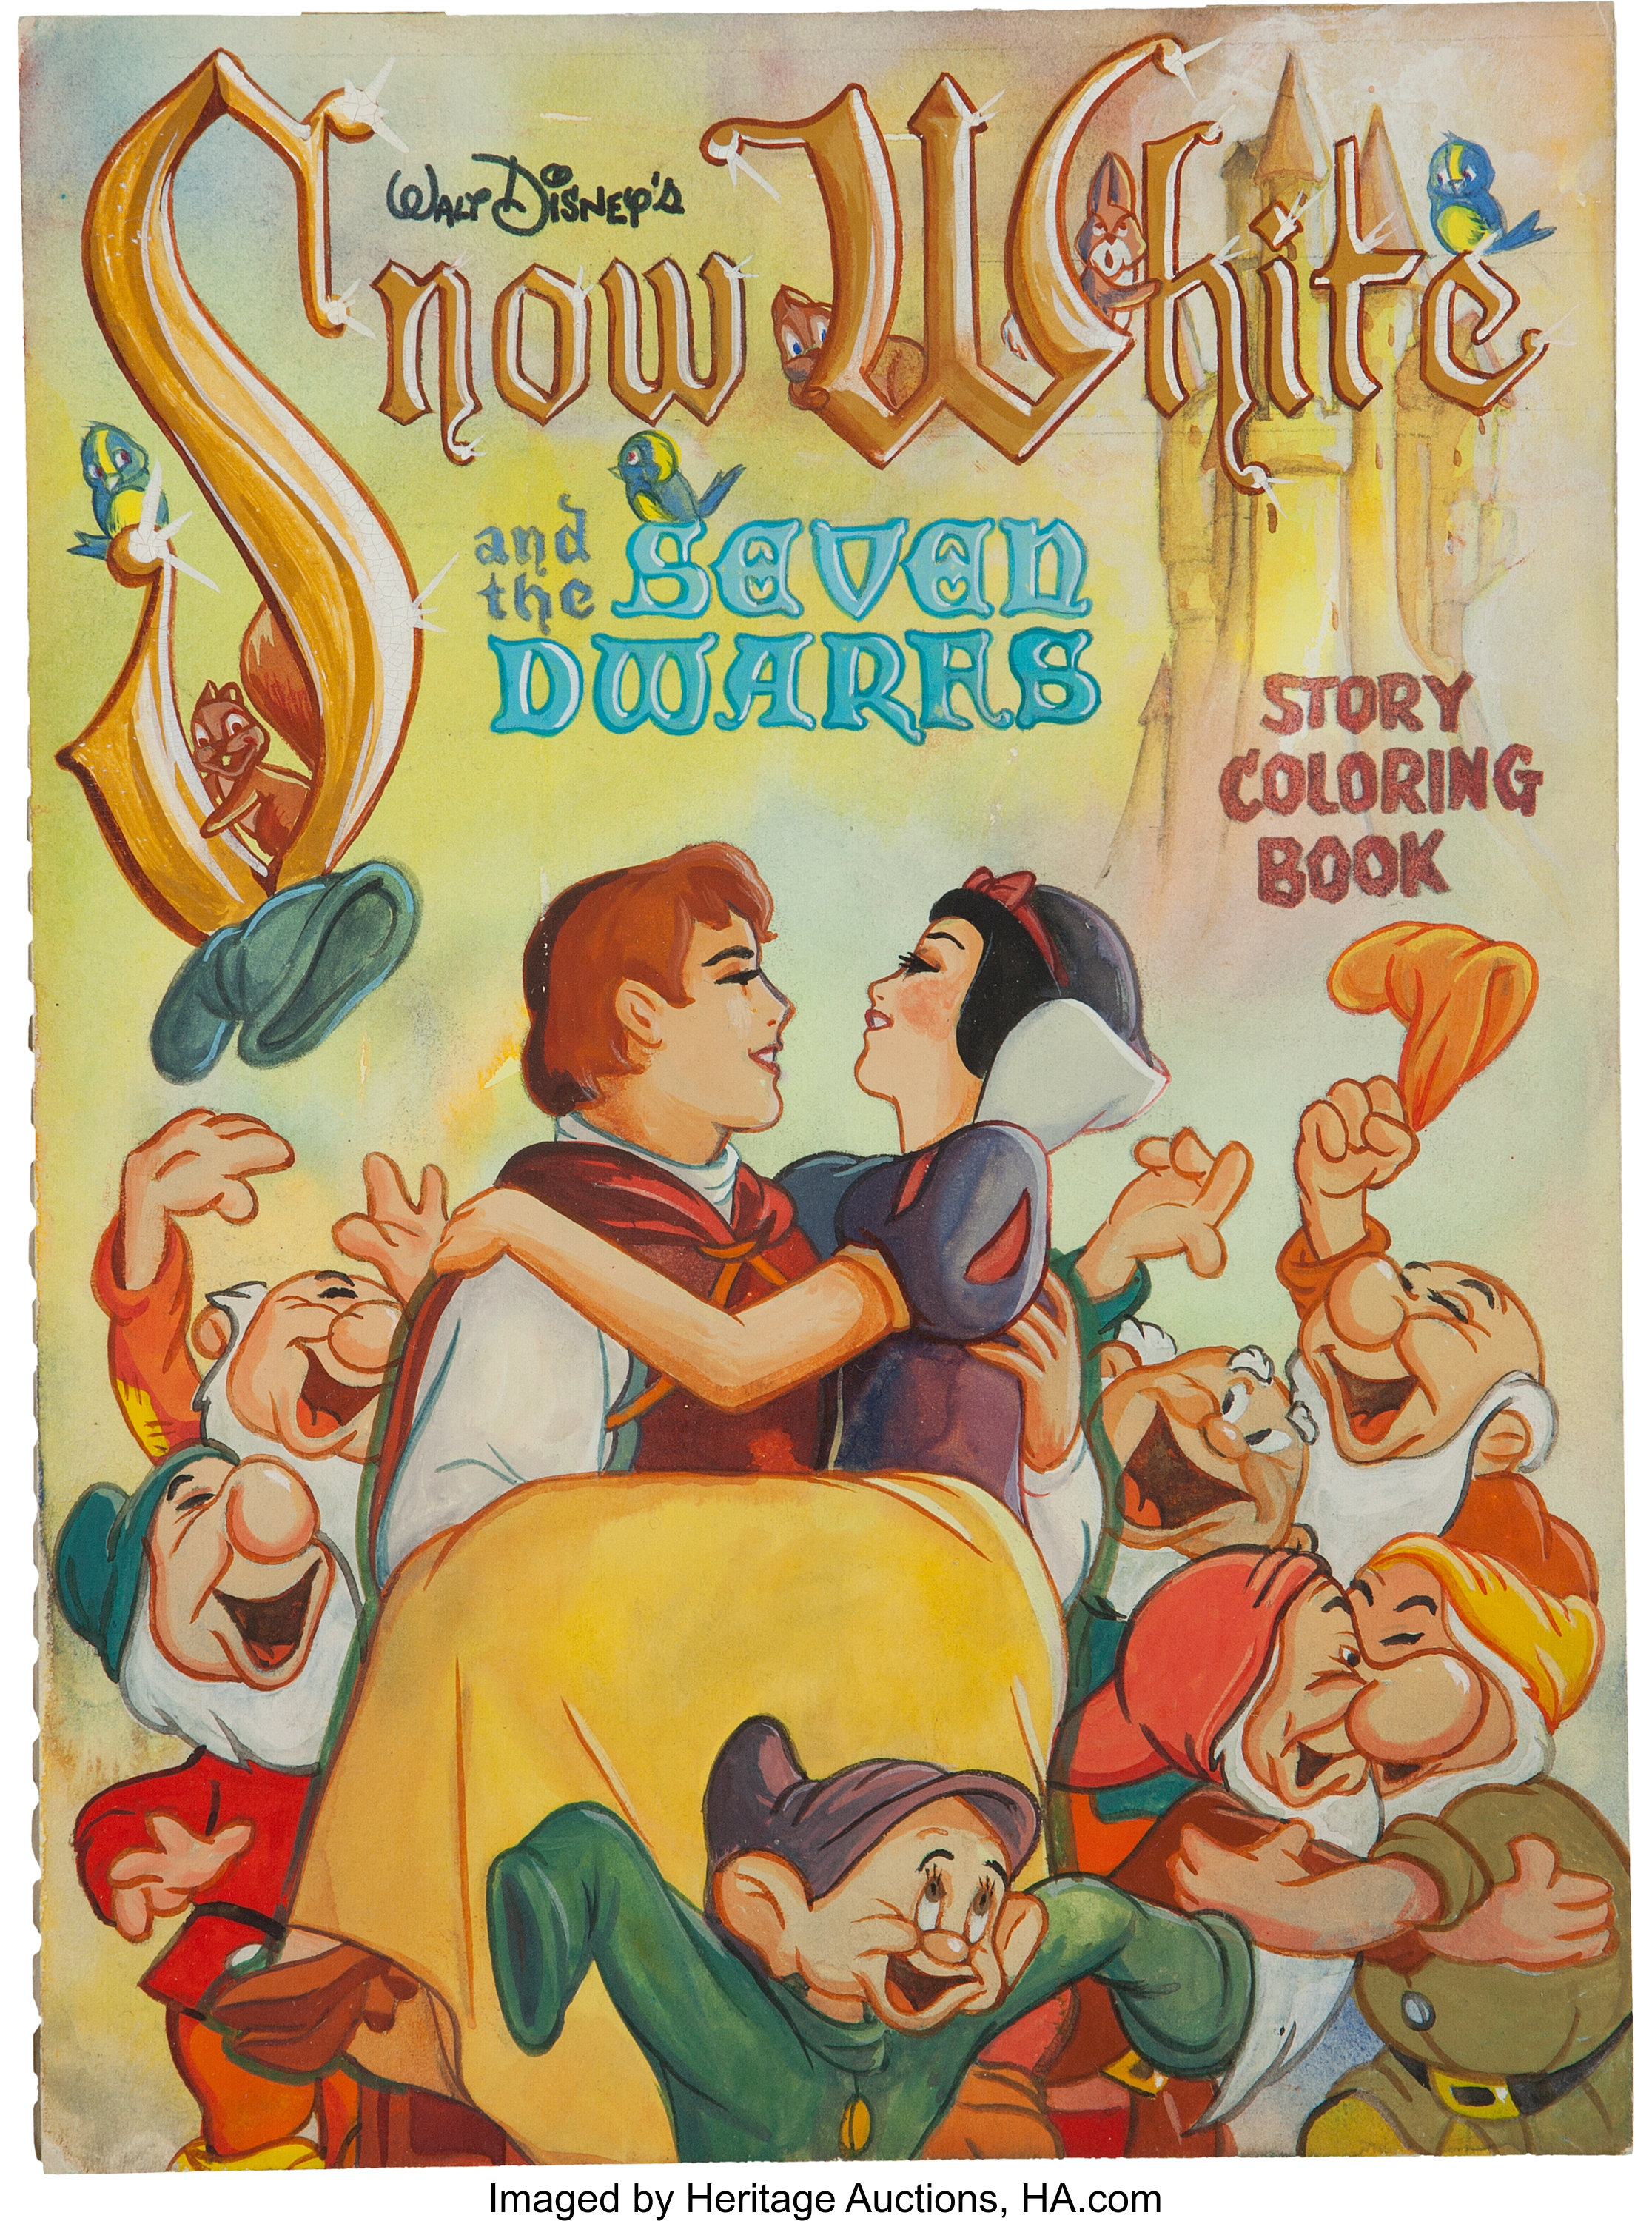 Snow White And The Seven Dwarfs Coloring Book Cover Original Art Lot 13622 Heritage Auctions